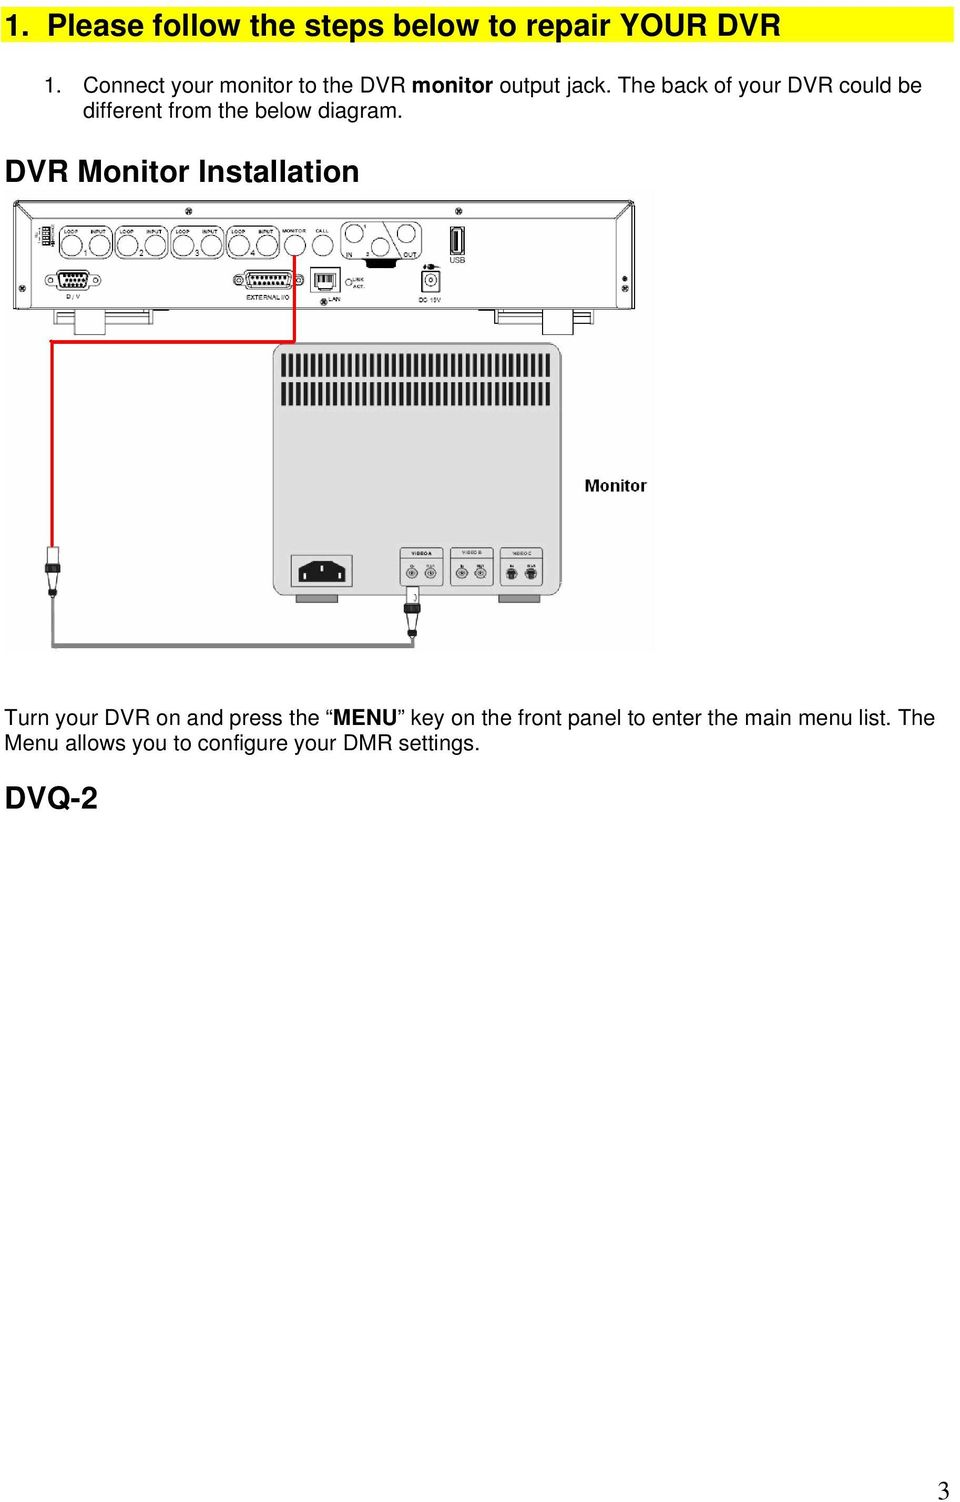 The back of your DVR could be different from the below diagram.